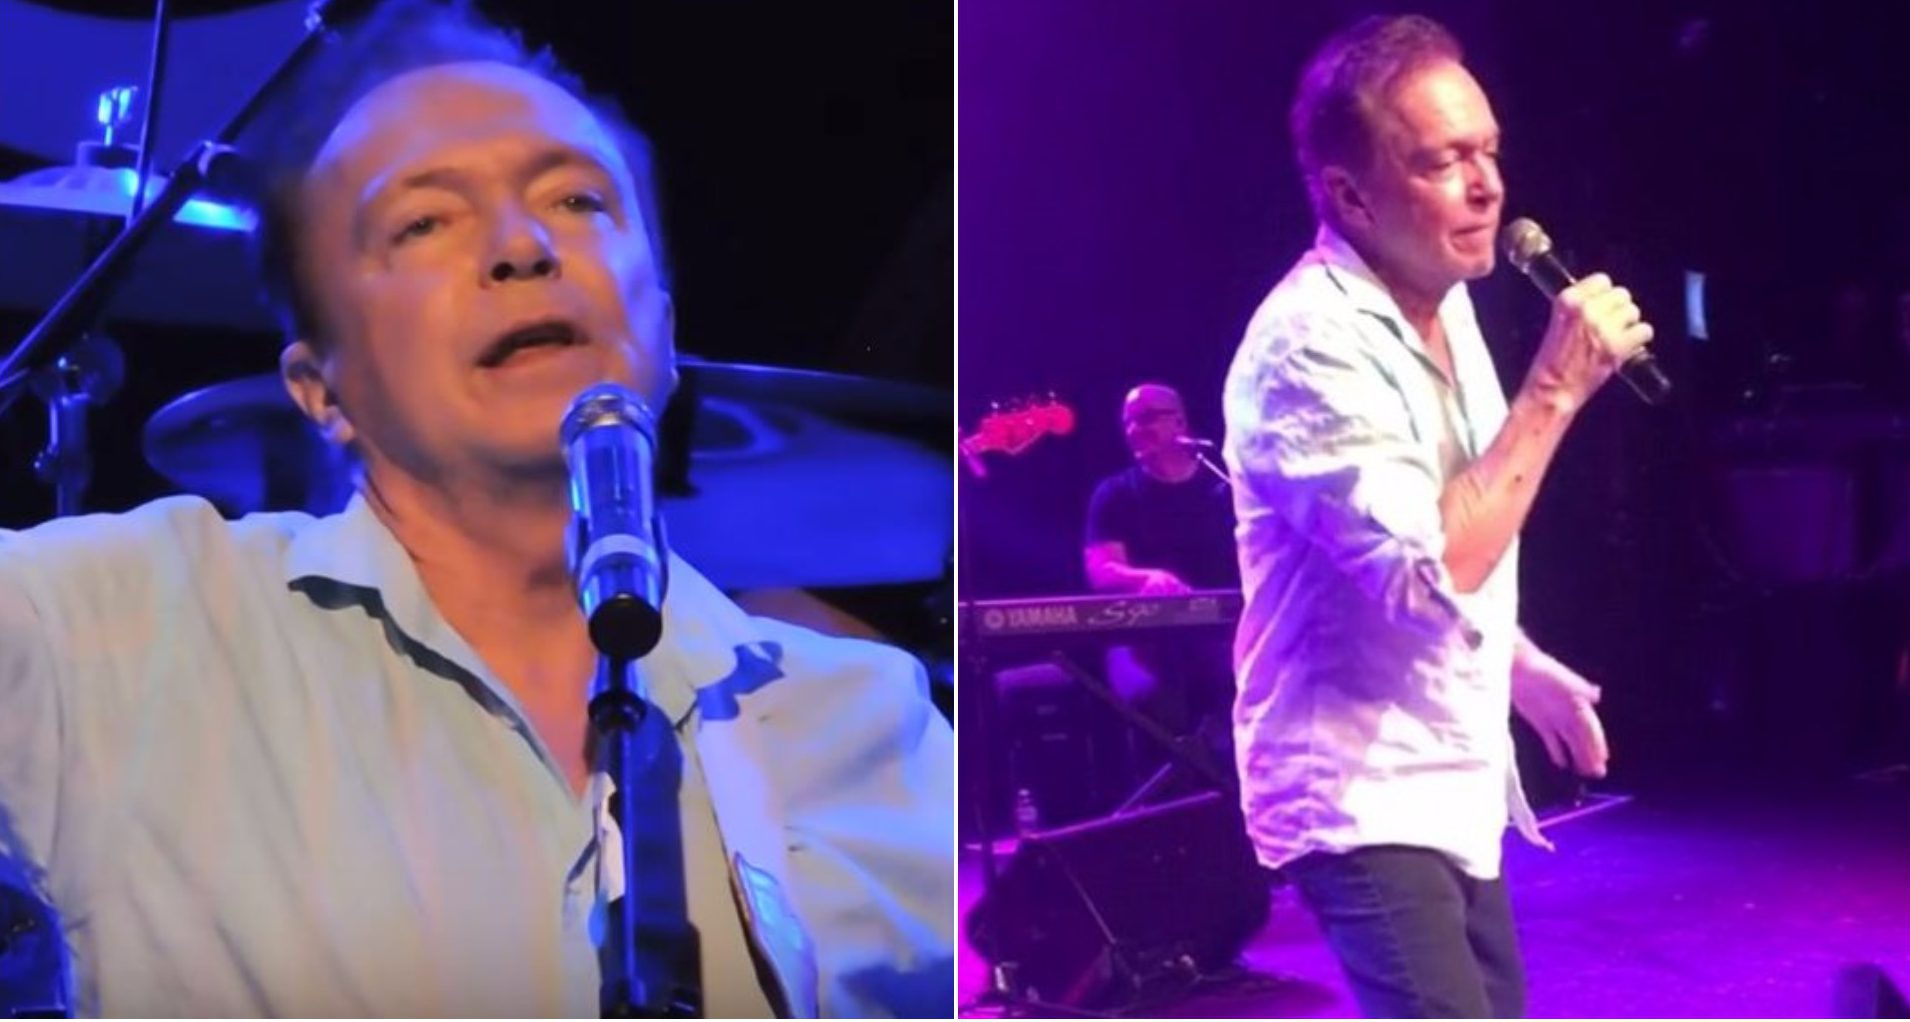 David Cassidy slurs his words, forgets lyrics, hits self with mic and tumbles over during gig two days before going public with dementia diagnosis